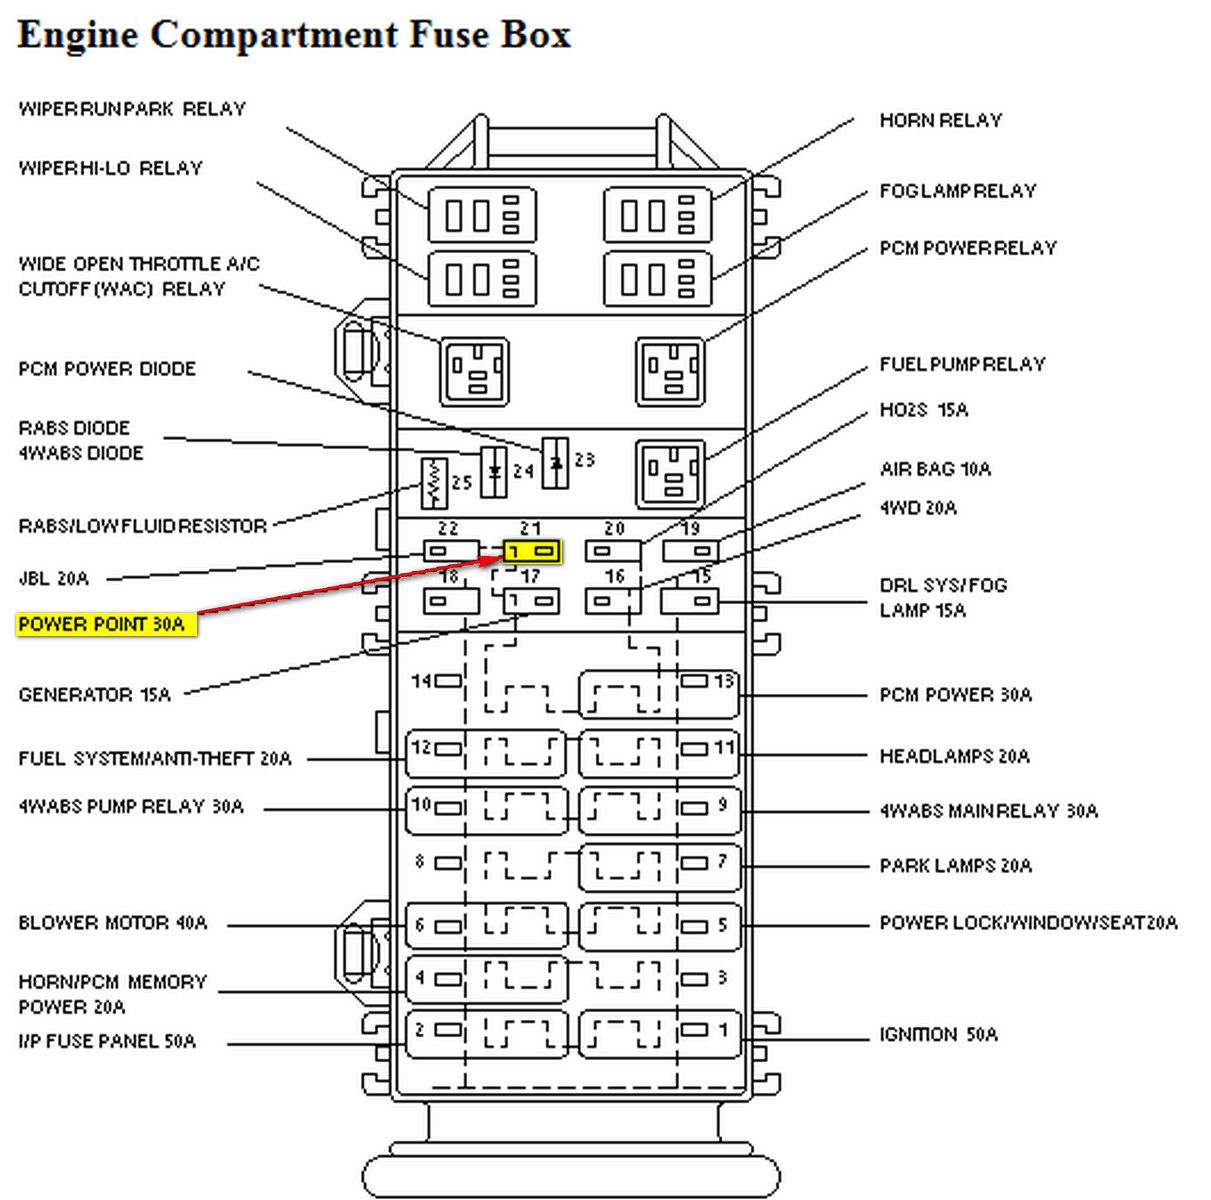 1997 Ford Ranger Fuse Box Diagram Truck Part Diagrams | Ford ranger, Fuse  box, Ford explorerPinterest